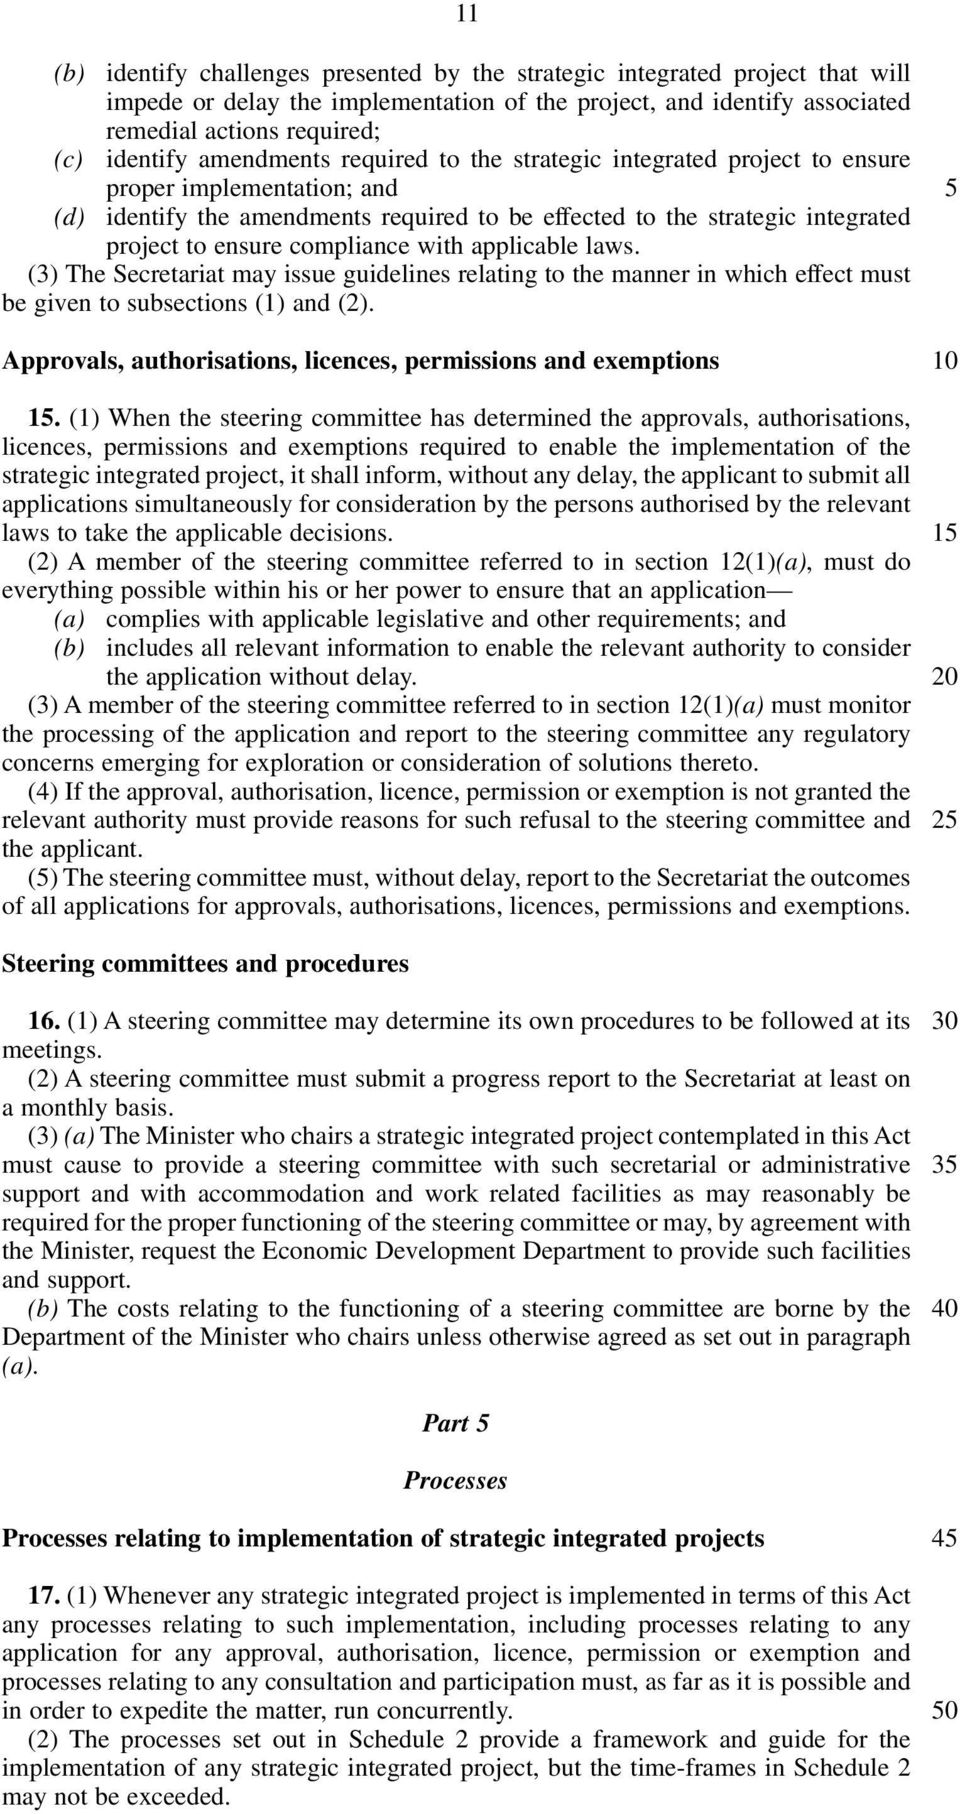 compliance with applicable laws. (3) The Secretariat may issue guidelines relating to the manner in which effect must be given to subsections (1) and (2).